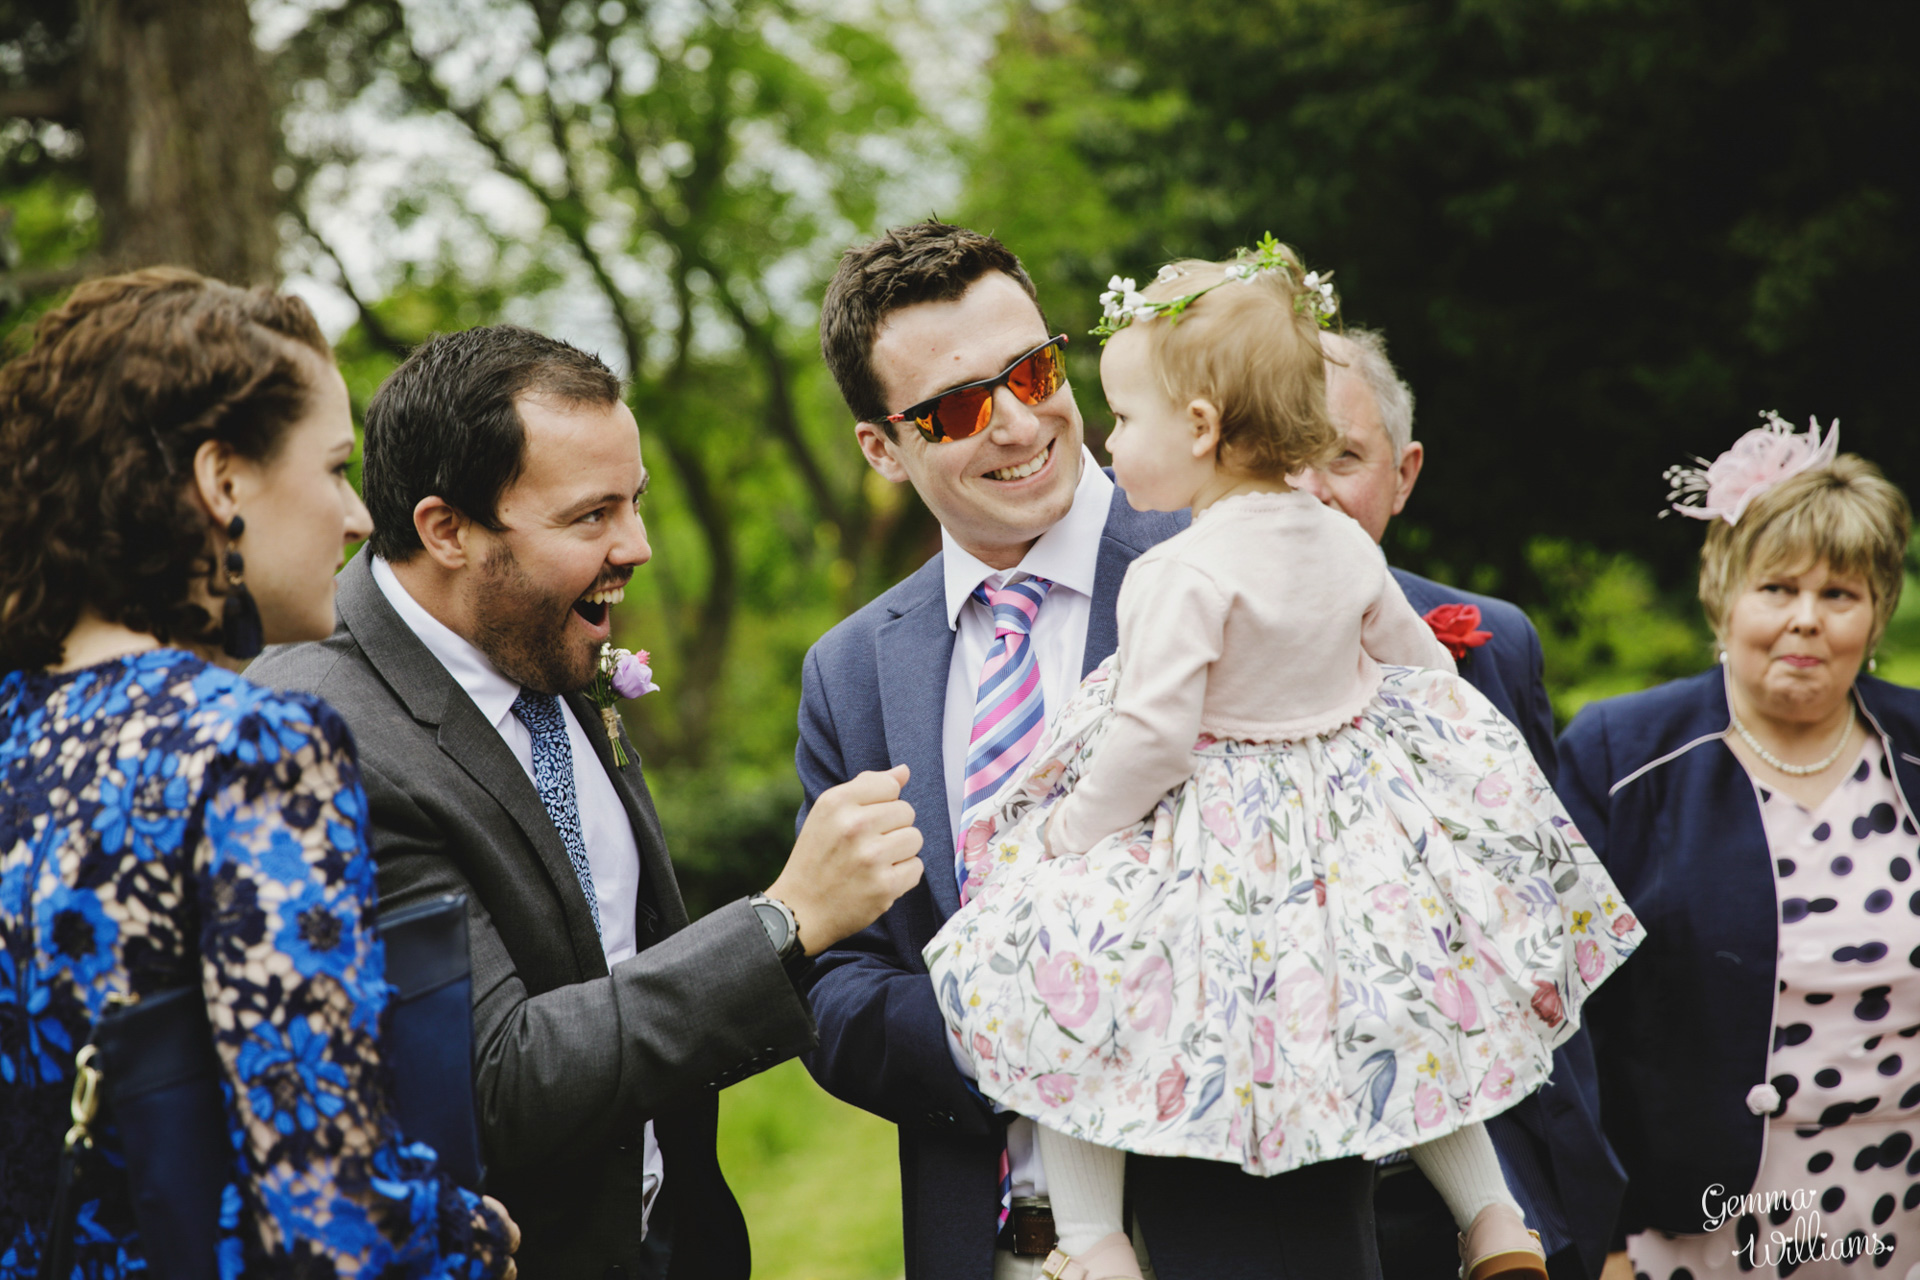 HaybarnWedding_GemmaWilliamsPhoto030.jpg